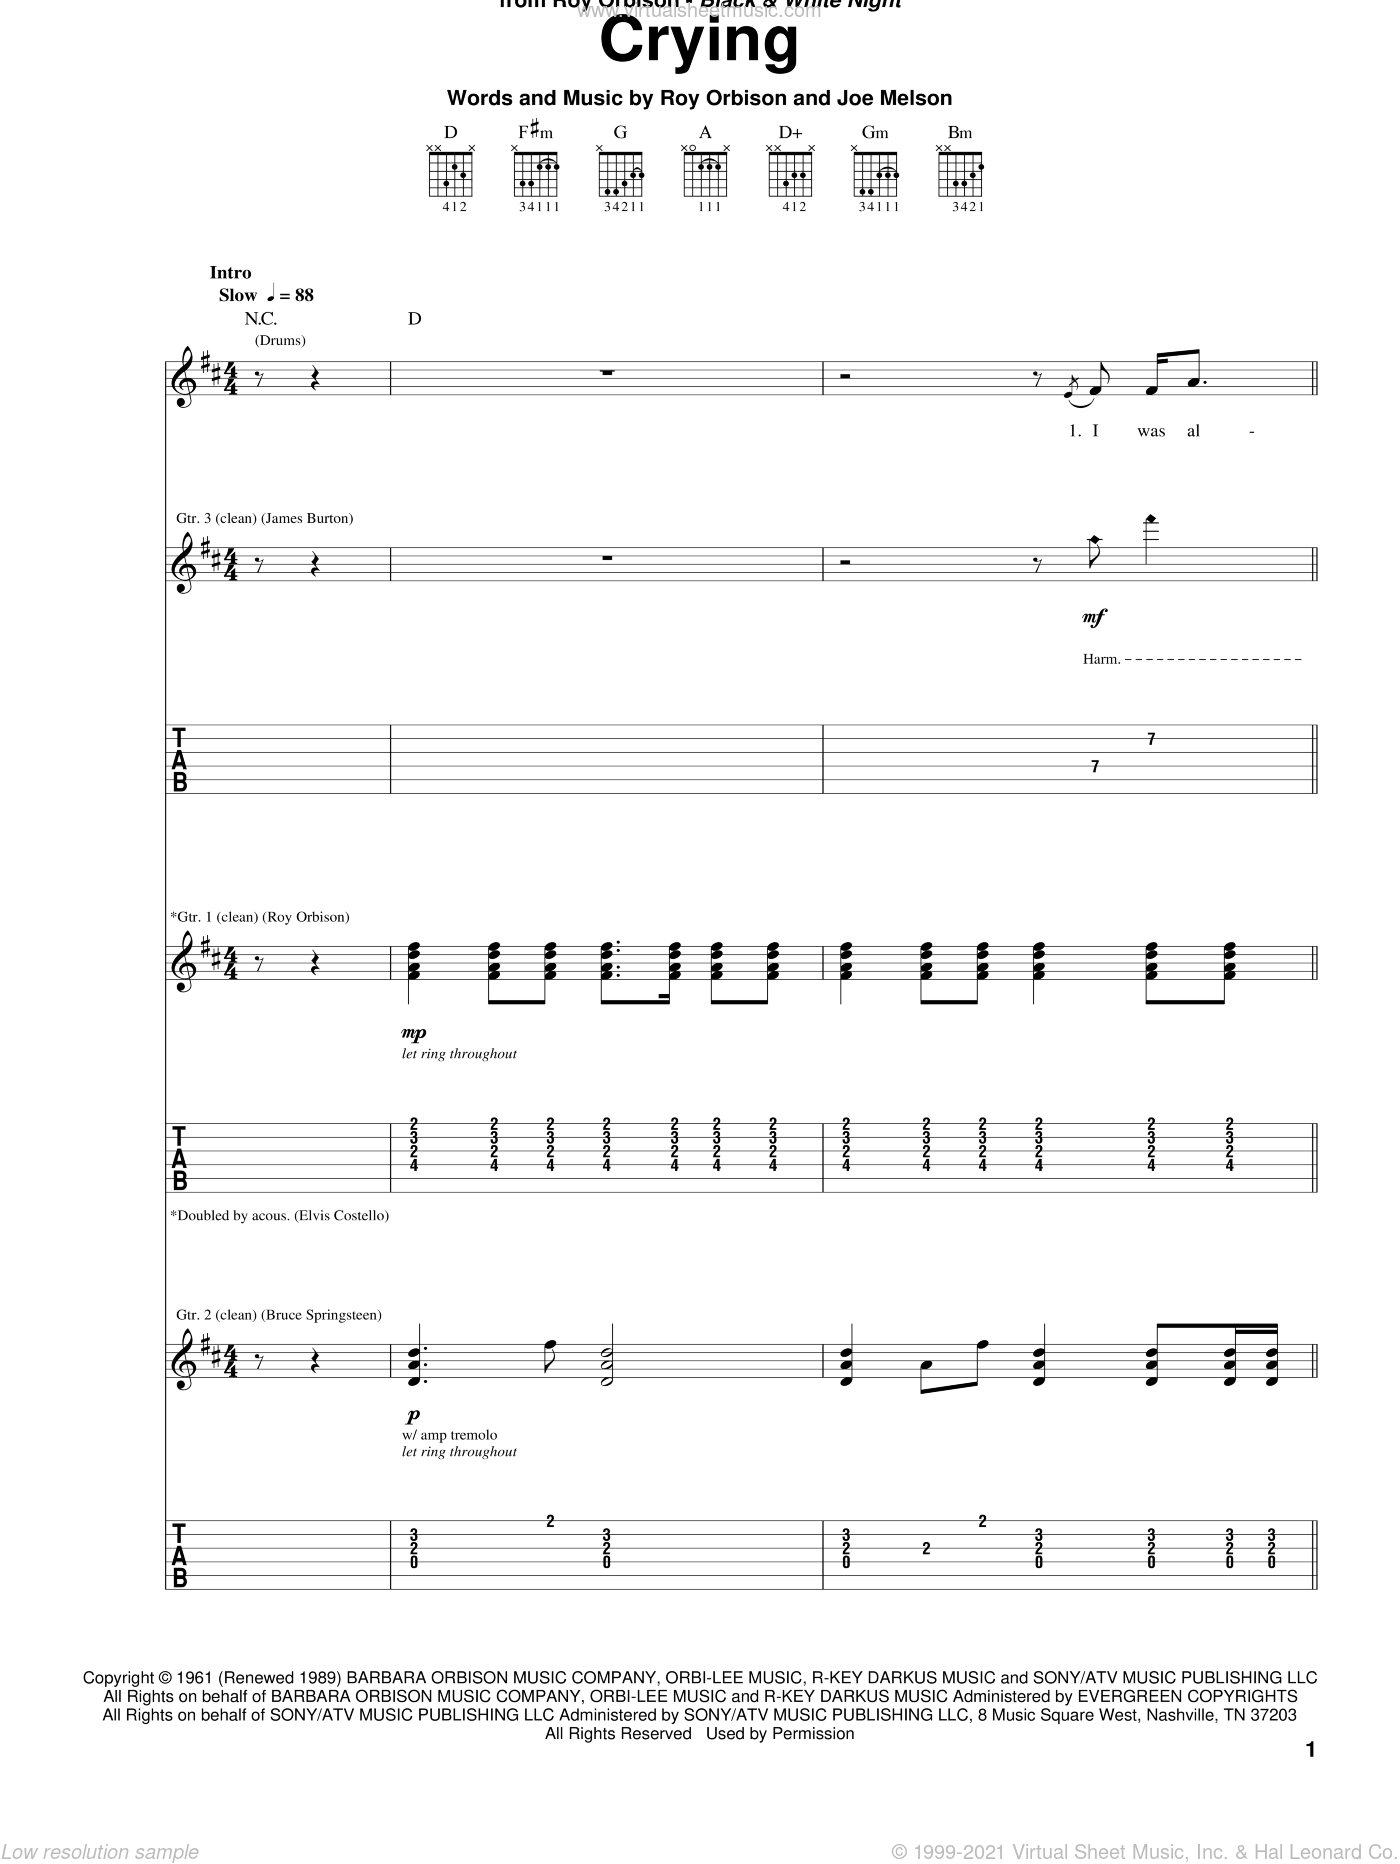 Crying sheet music for guitar (tablature) by Roy Orbison, Don McLean, Jay & The Americans and Joe Melson, intermediate skill level